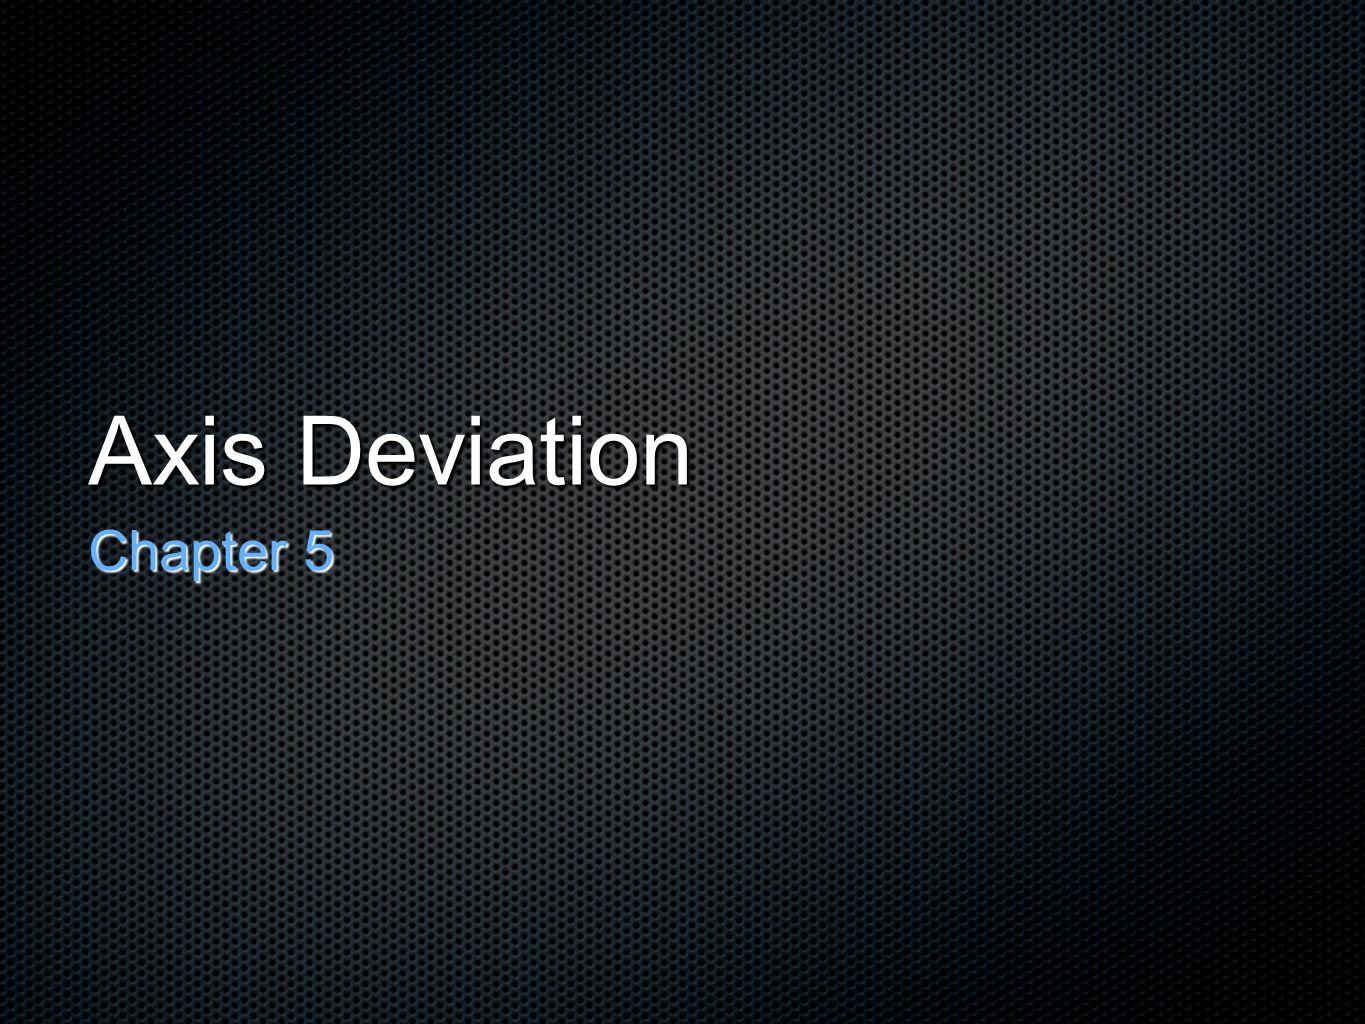 Axis Deviation Chapter 5